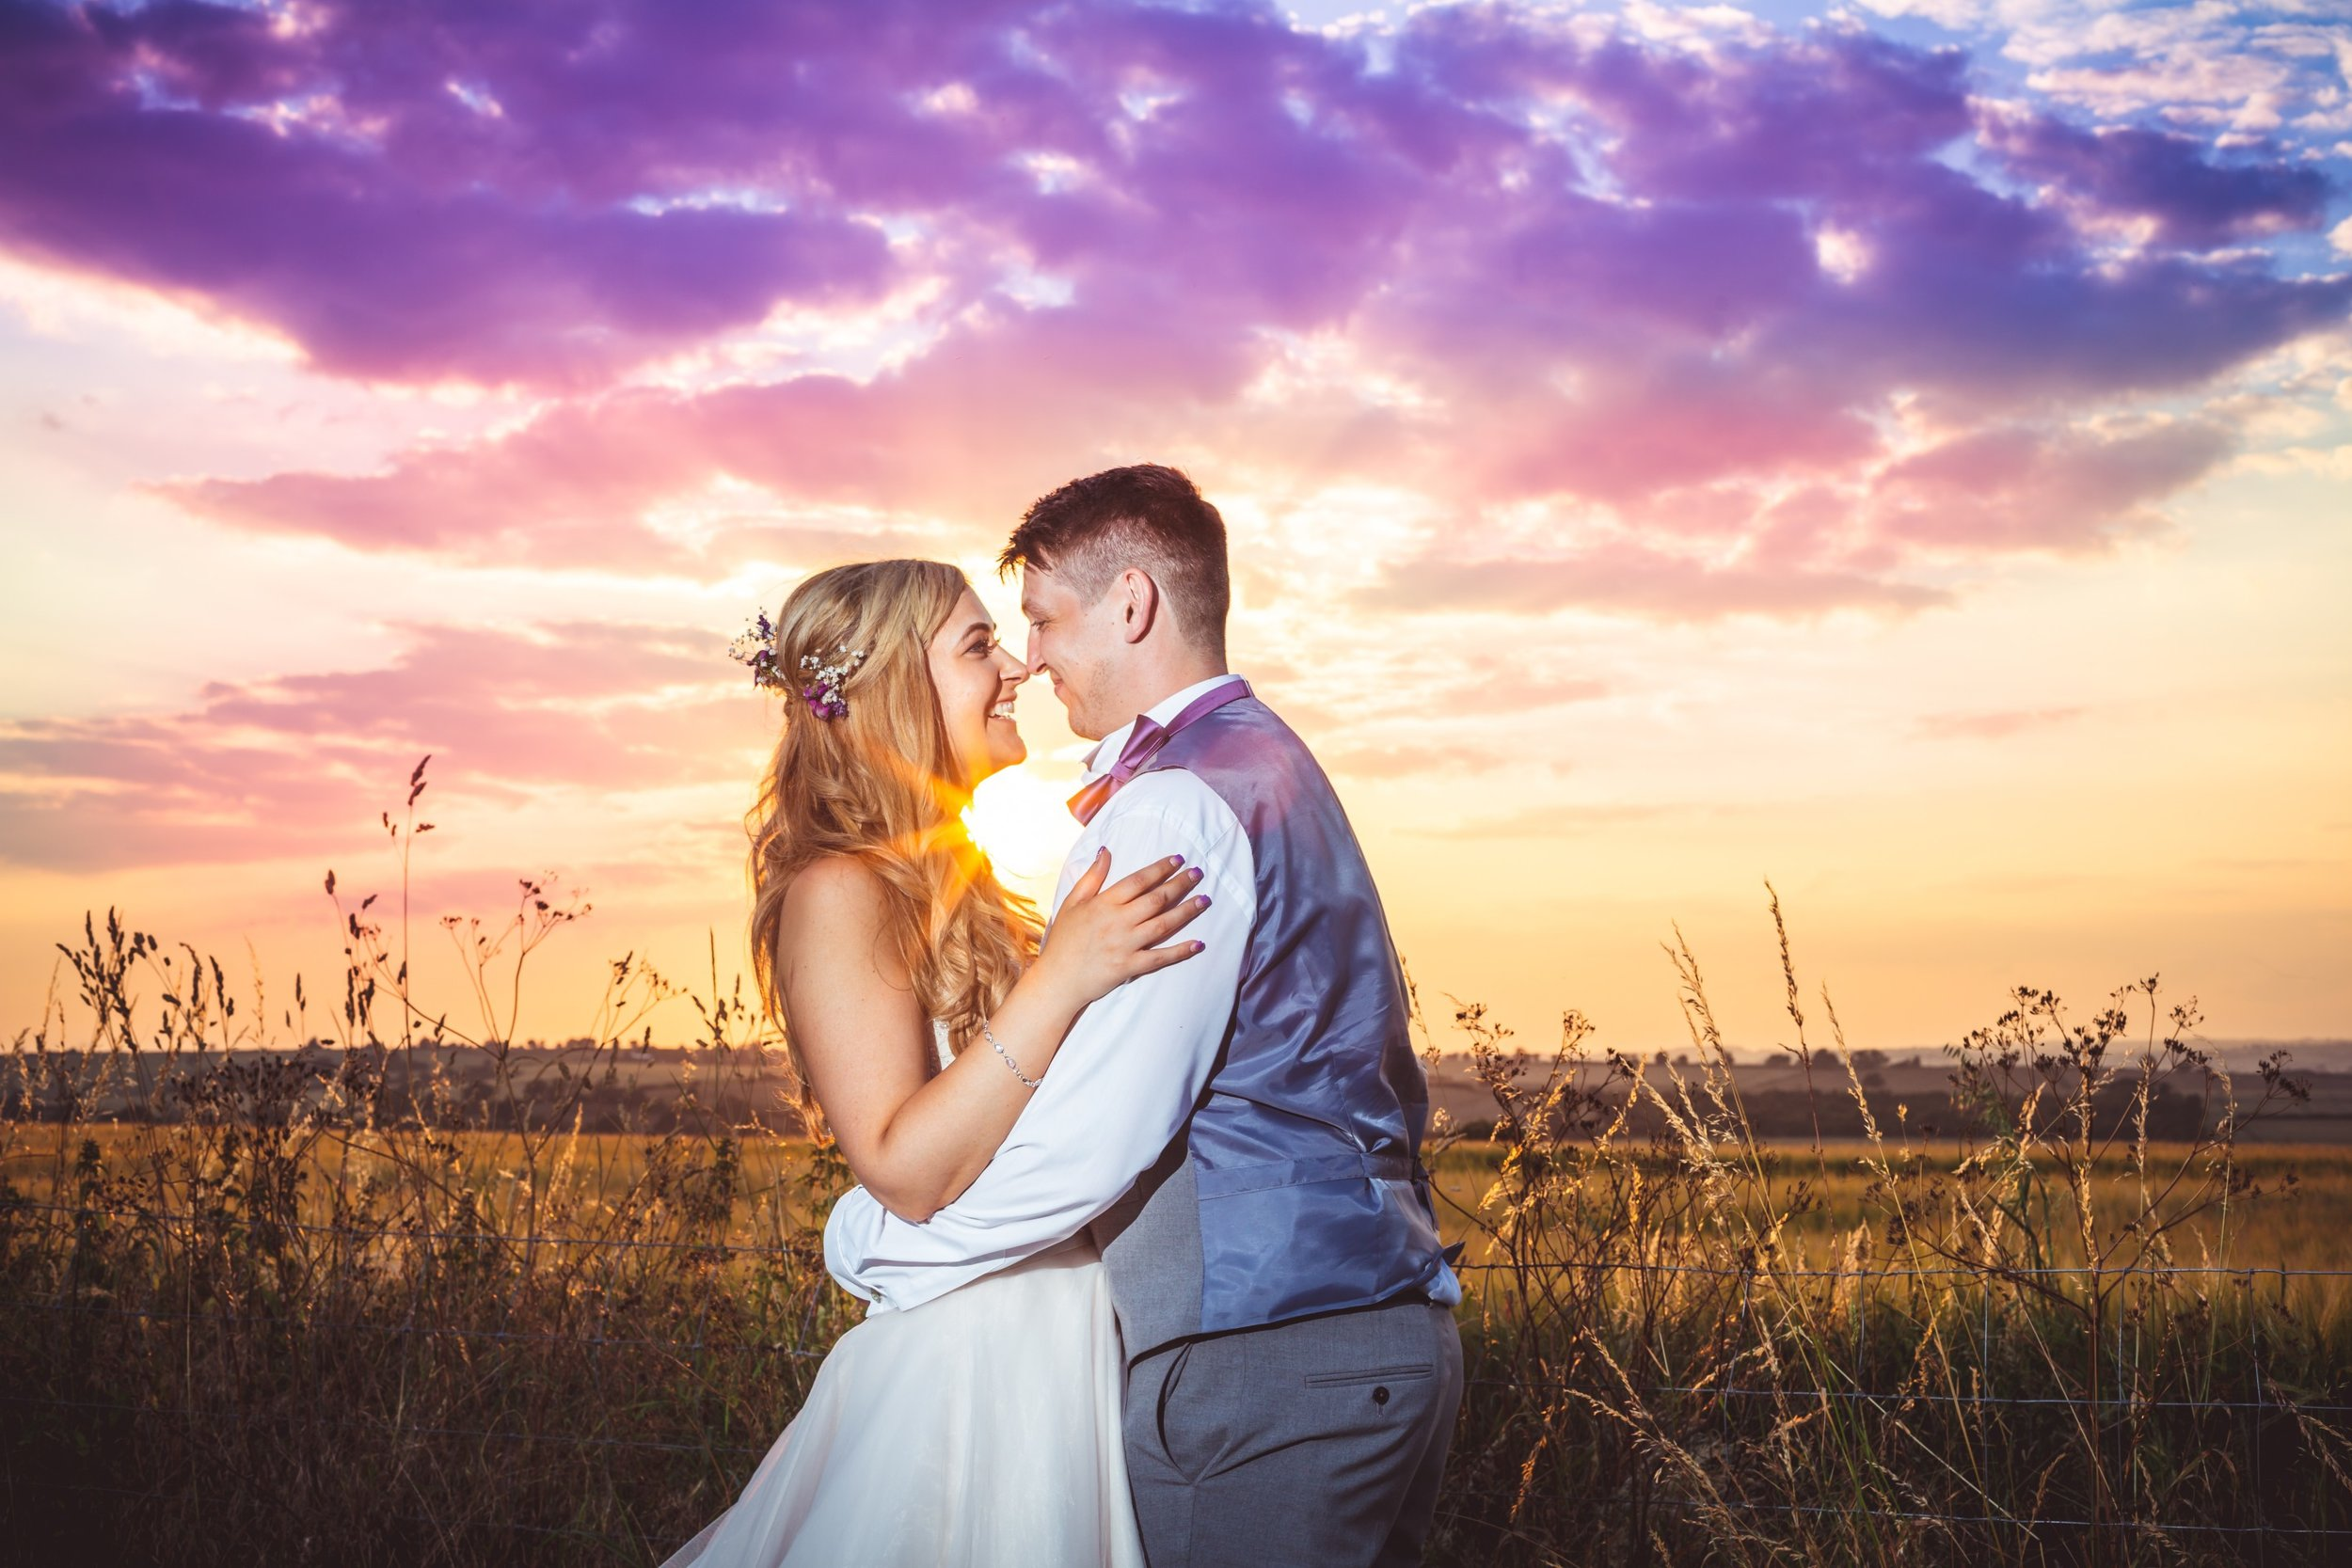 sunset over field behind bride and groom smiling, Best wedding photographers in Northamptonshire, natural, creative, Leicestershire, Rutland, Cambridgeshire, wedding, wedding photographers, wedding photography, Sara Mayer, Douglas Mayer, Fotovida Photography, excellent reviews, premium wedding photographers, premium service